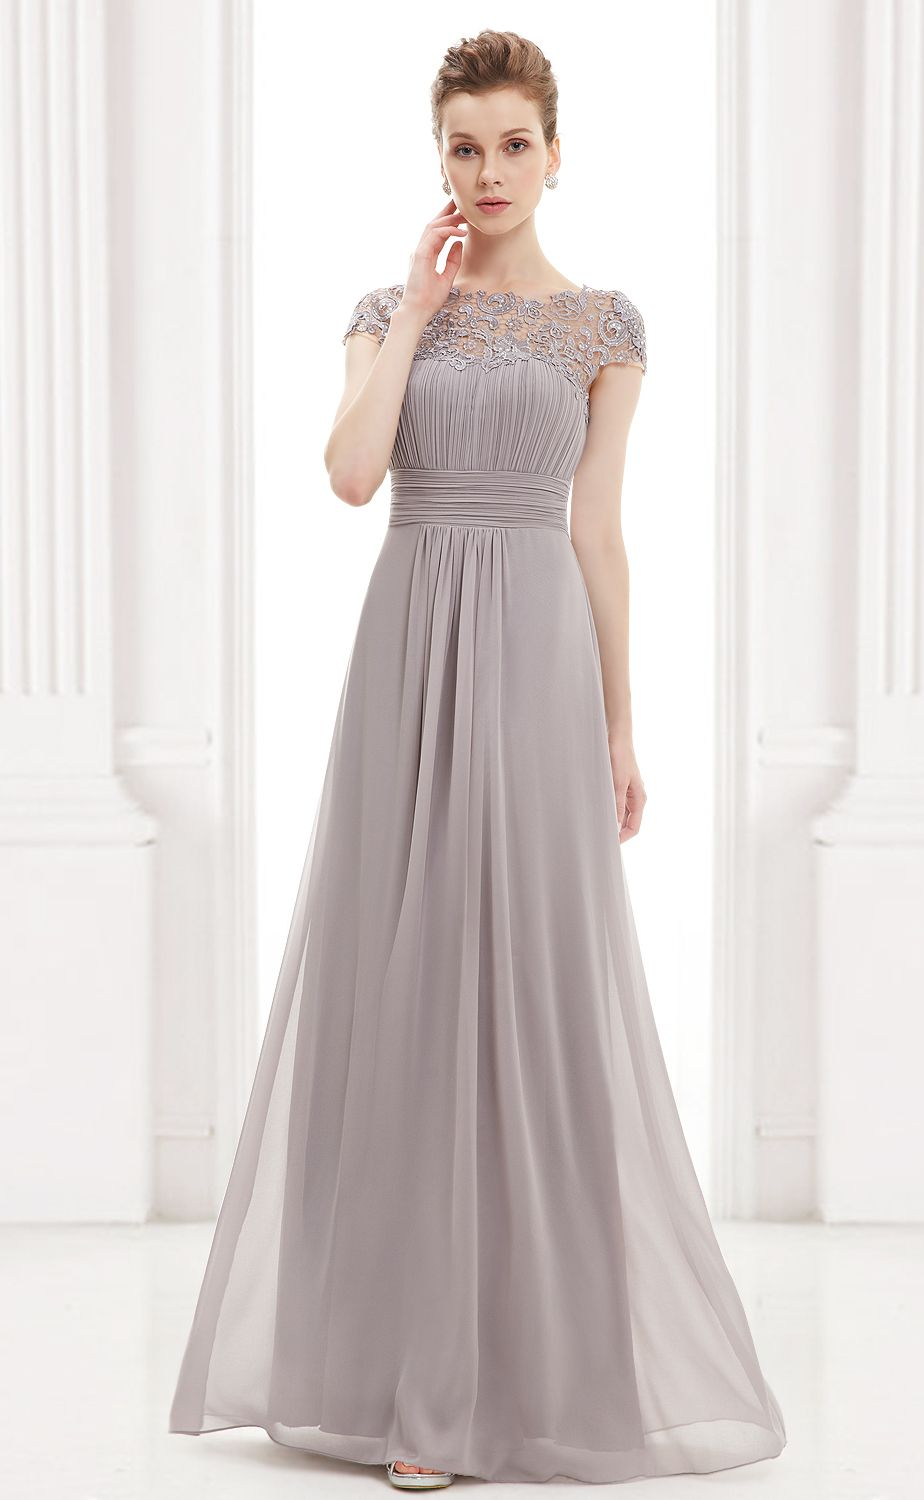 Lace Cap Sleeve Evening Gown | Pinterest | Gray, Lace evening gowns ...